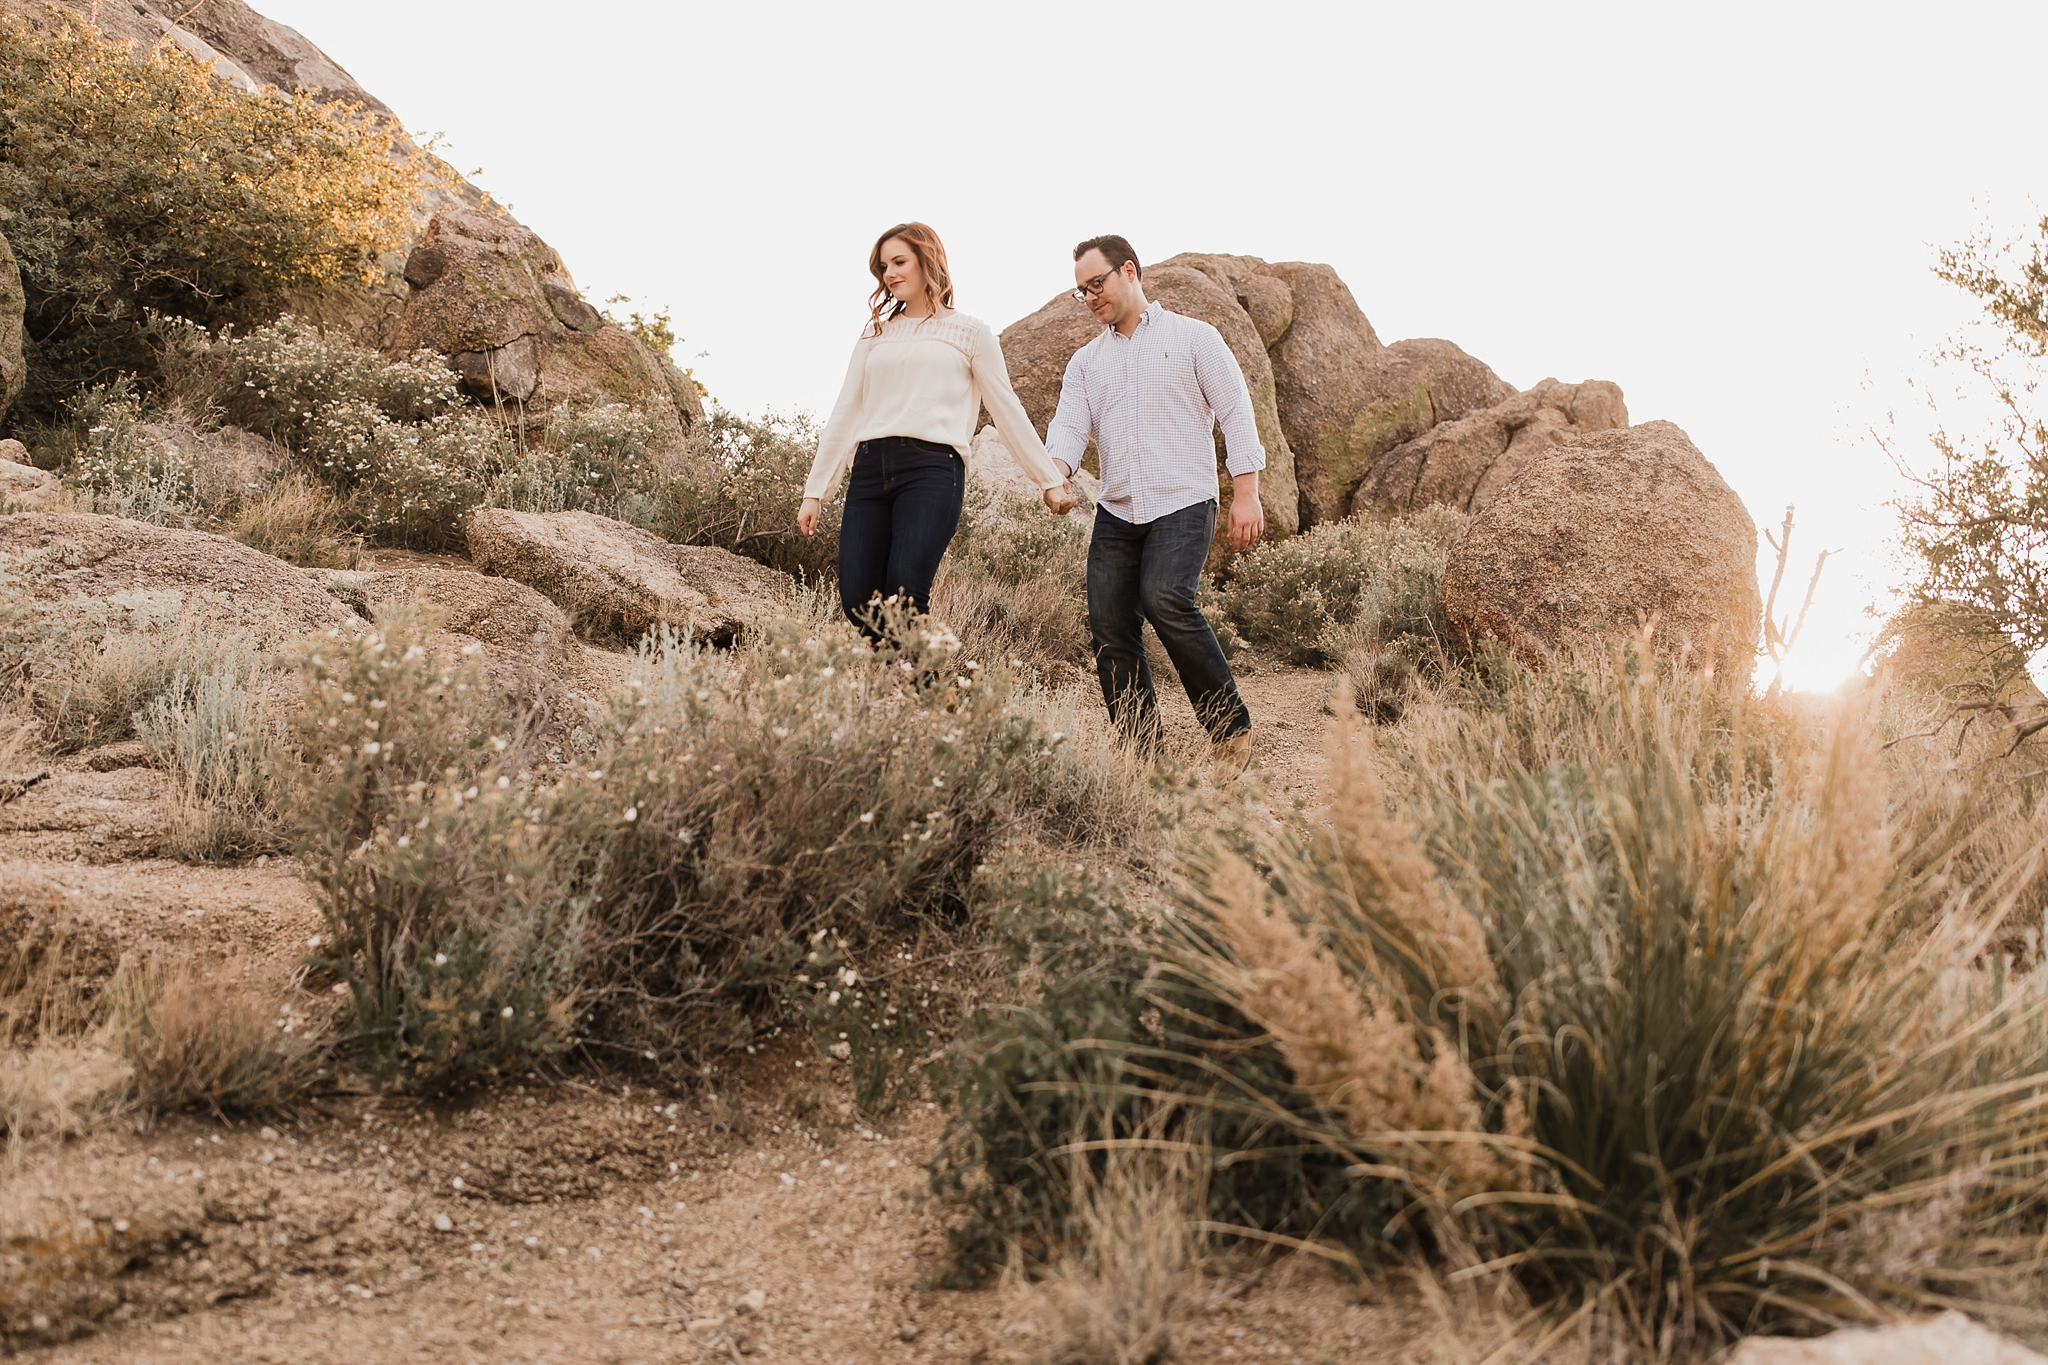 Alicia+lucia+photography+-+albuquerque+wedding+photographer+-+santa+fe+wedding+photography+-+new+mexico+wedding+photographer+-+new+mexico+wedding+-+new+mexico+engagement+-+engagement+photographer+-+mountain+engagement+-+desert+engagement_0023.jpg